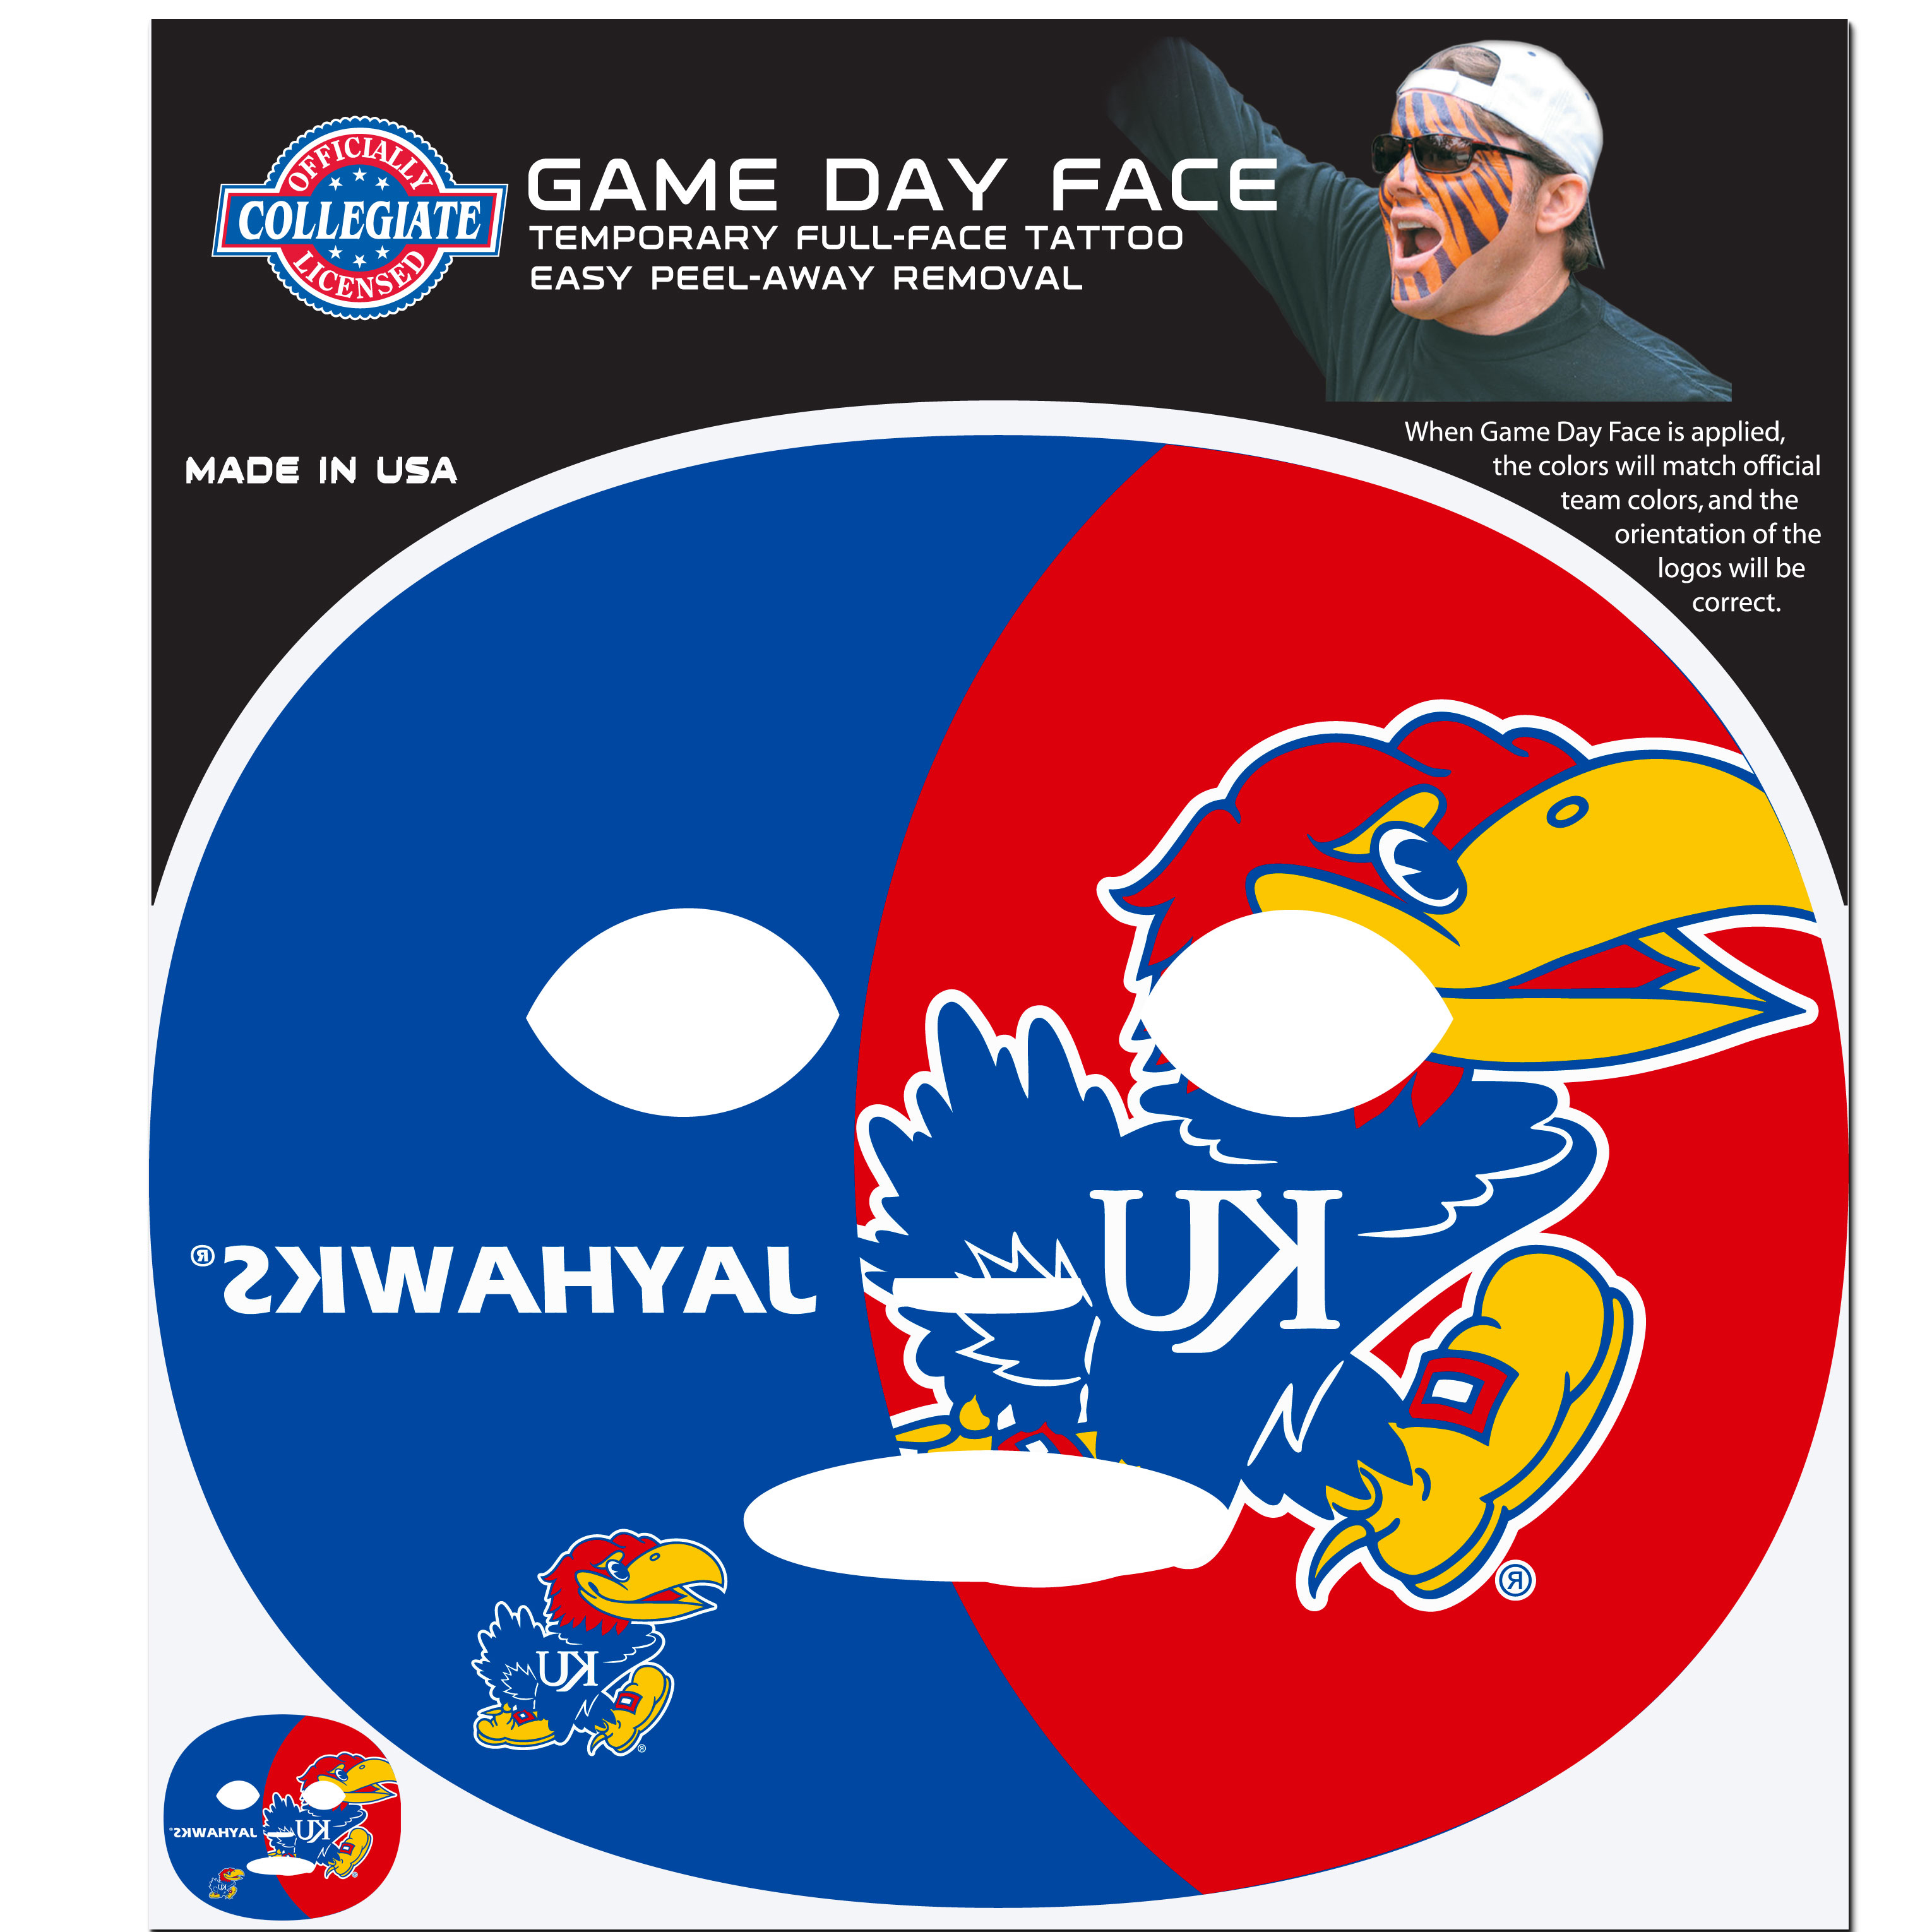 Kansas Jayhawks Game Face Temporary Tattoo - No better way to show your Kansas Jayhawks pride than by painting your face. Siskiyou's Game Day Face Temporary Tattoo isn't your typical face paint. It is a water based application that doesn't smudge, smear or sweat off  while you're wearing it and easily peels off after you're done celebrating your team's big Win! The temporary tattoo is large enough to trim down to fit your face.  Our Game Day Face Temporary Tattoo's are fun for fans of all ages. You may have seen our product before,  these are the same Temporary Face Tattoos as pitched on ABC's Shark Tank.